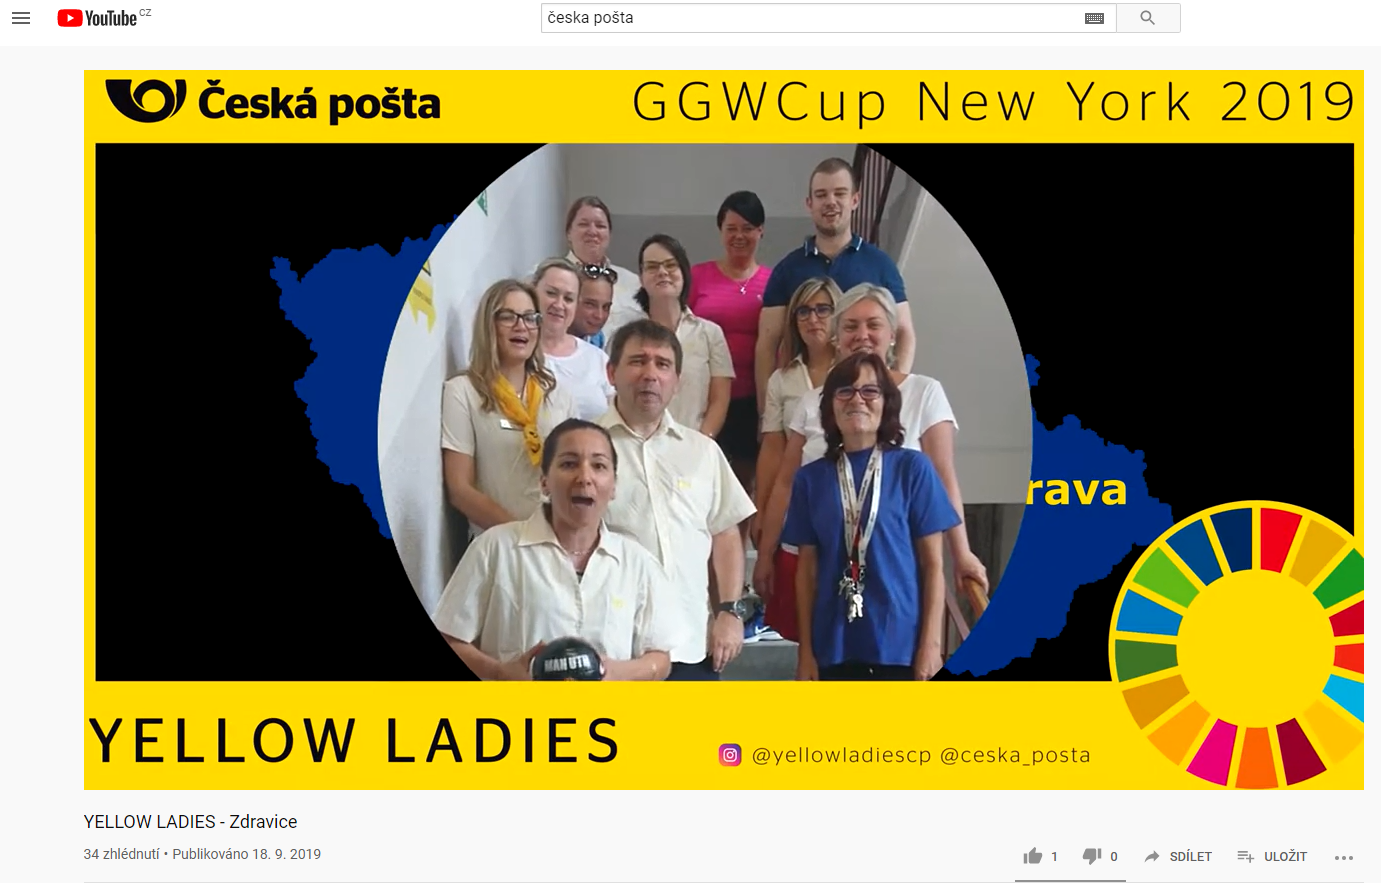 GGWCyp NYC 2019 Team Yellow Ladies_yt_18_9_2019_2.png